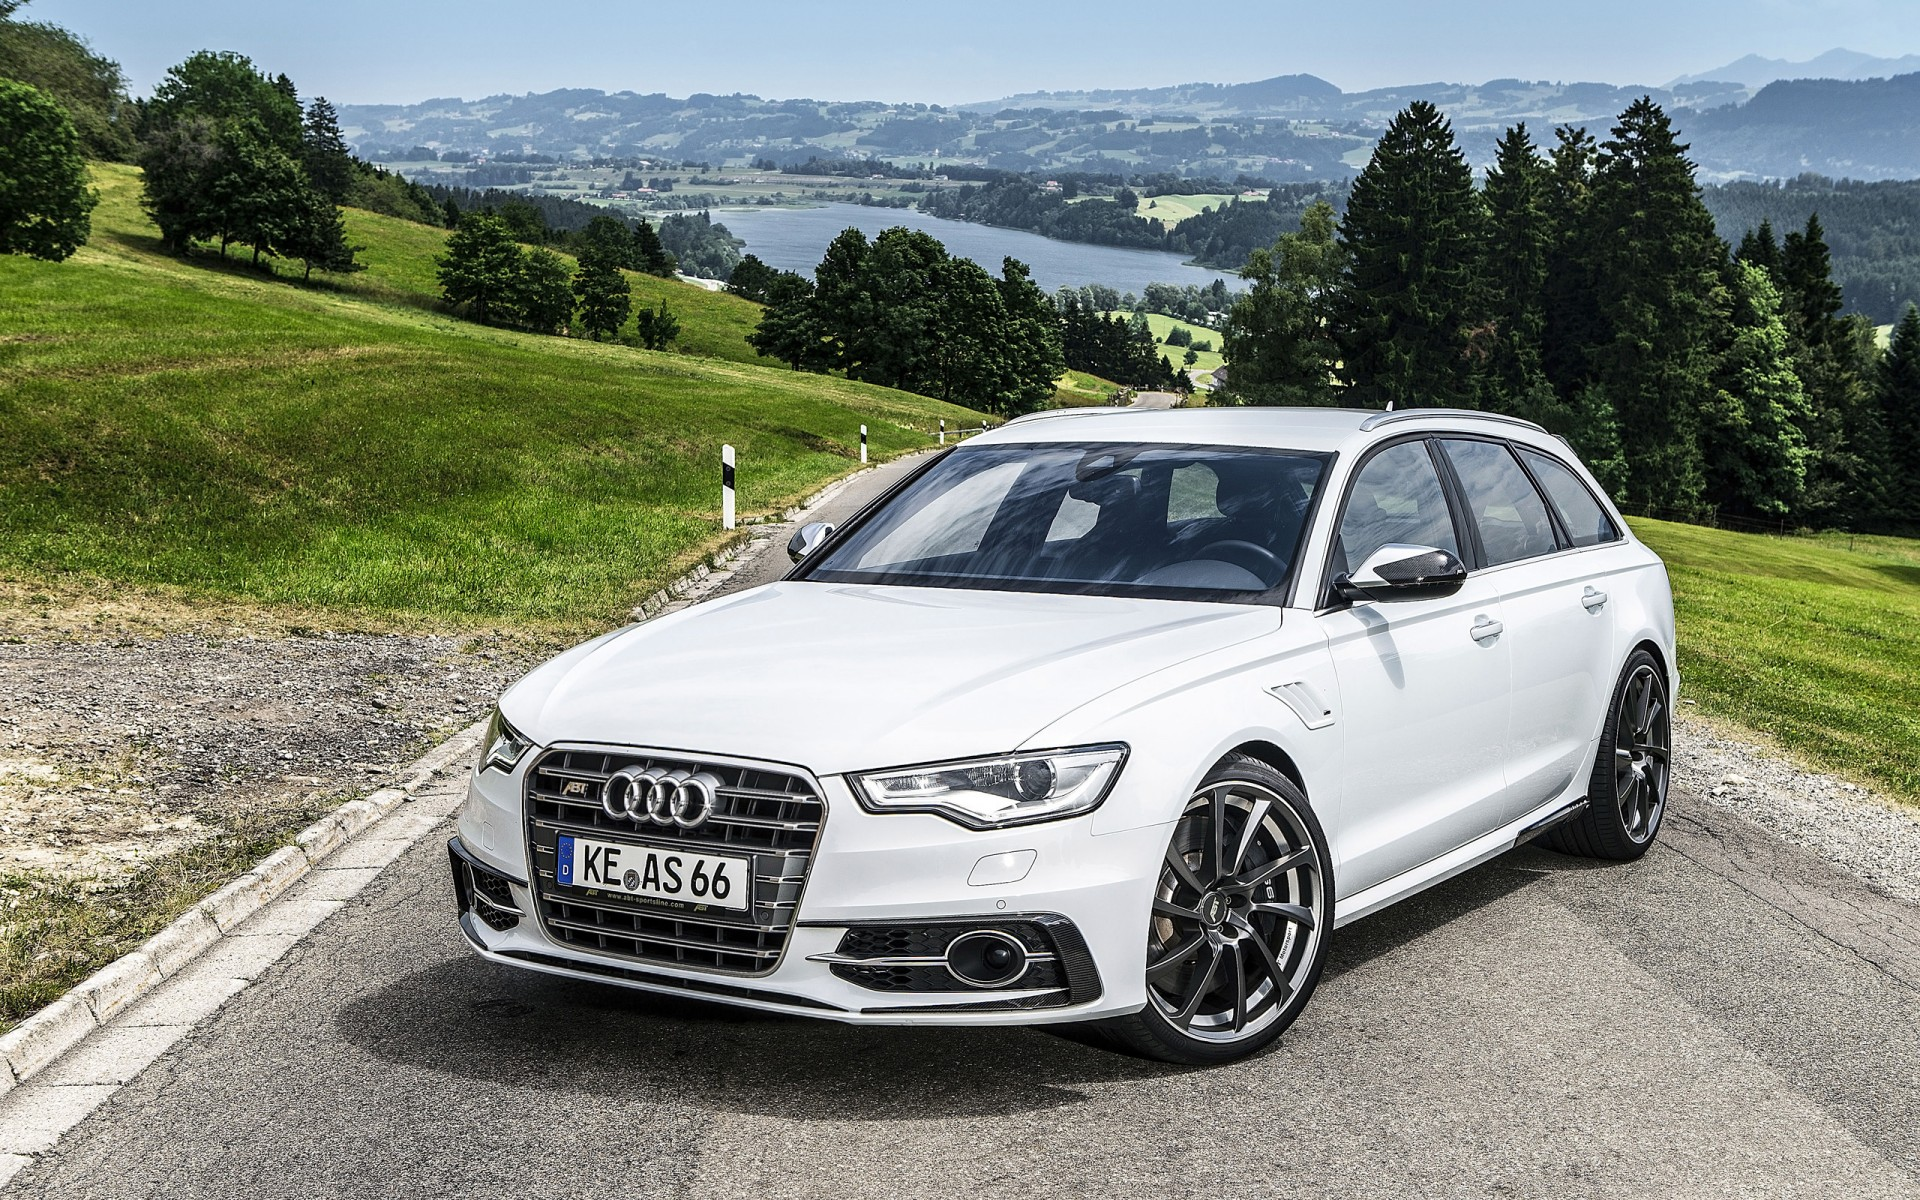 2013 ABT Audi AS6 R Wallpaper in 1920x1200 Resolution